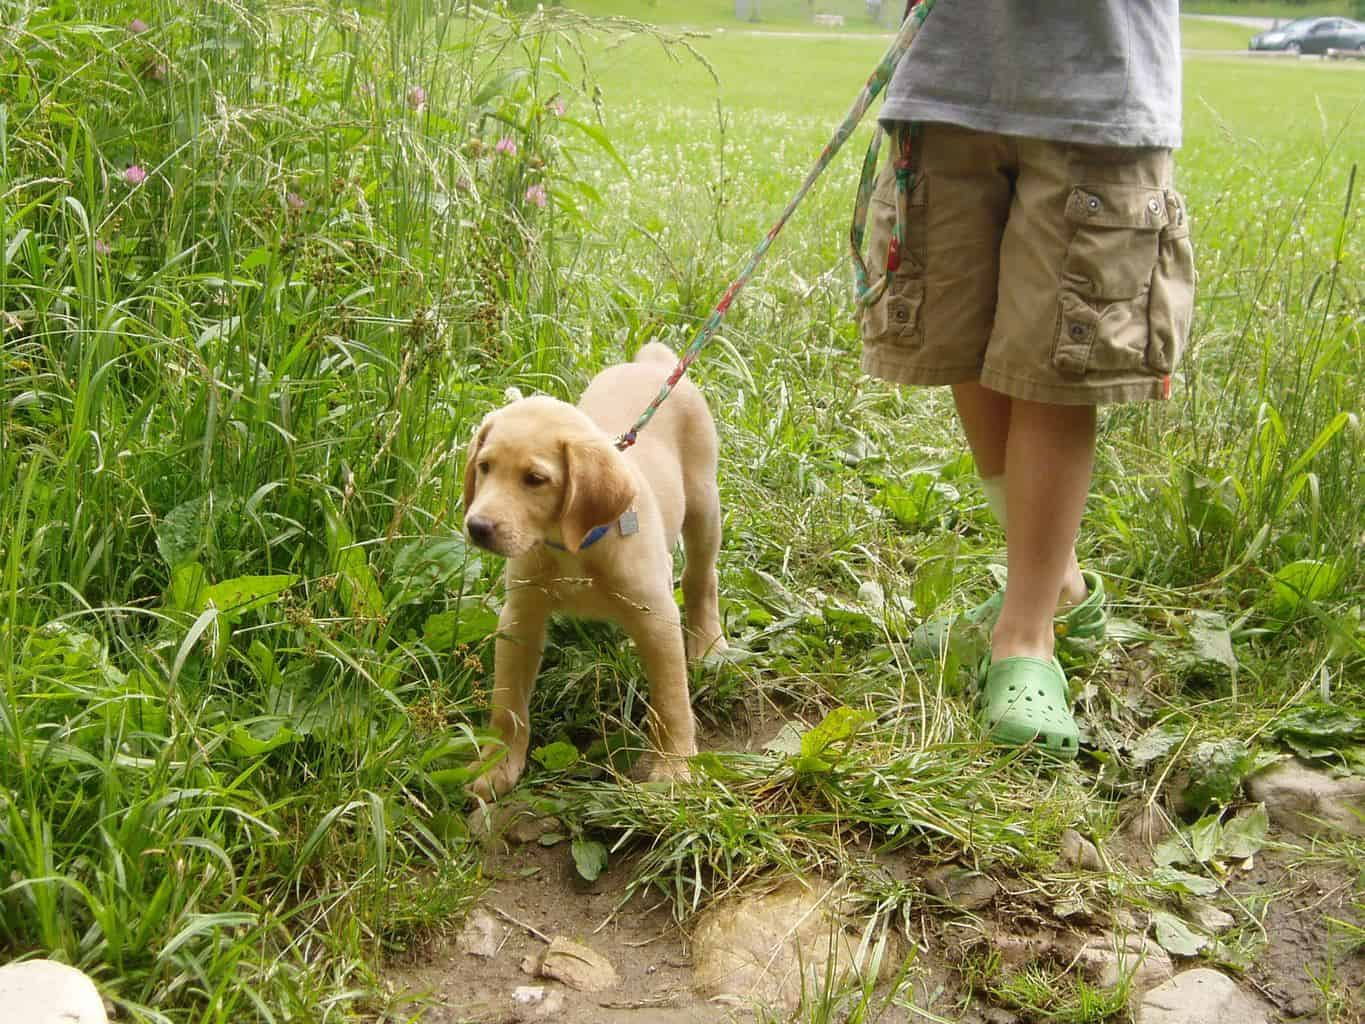 A yellow lab puppy at the end o f a leash with a young boy standing in the tall grass.